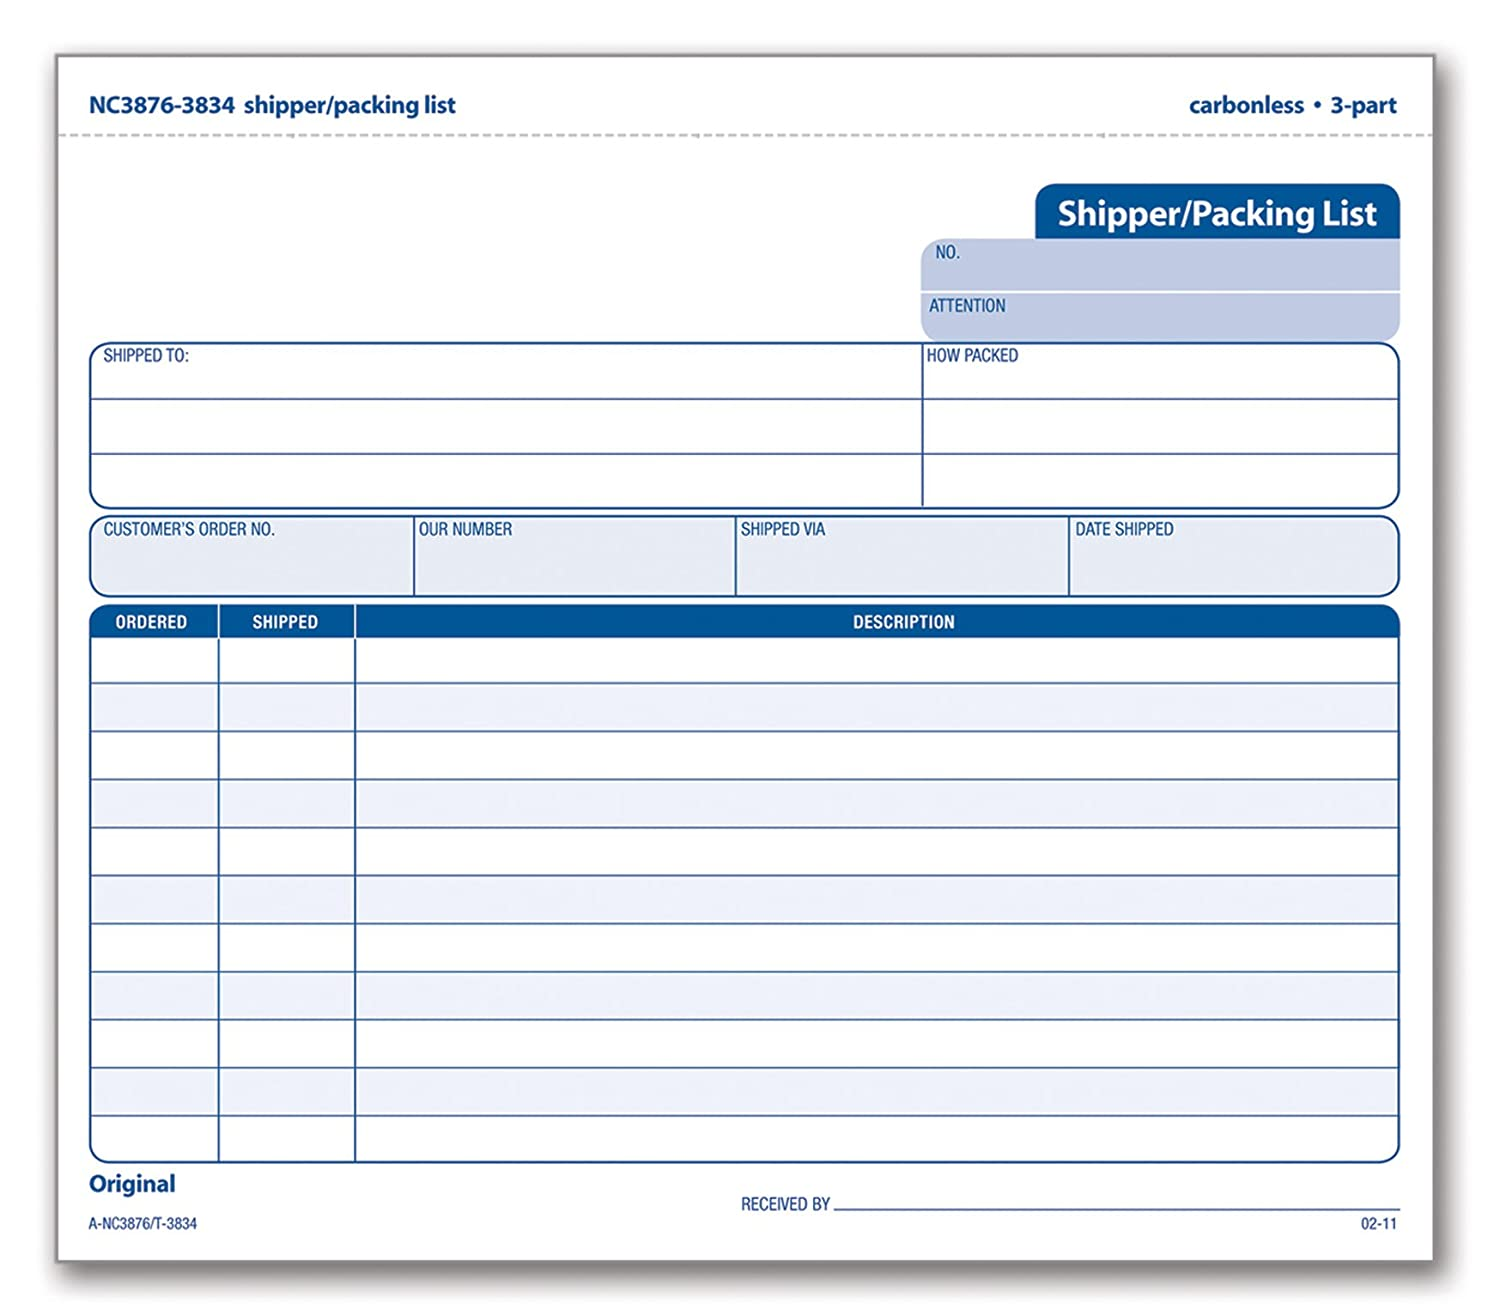 com tops shipper packing list form triplicate com tops shipper packing list form triplicate carbonless 8 5 x 7 inches 50 sets per pack 3834 blank shipping forms office products